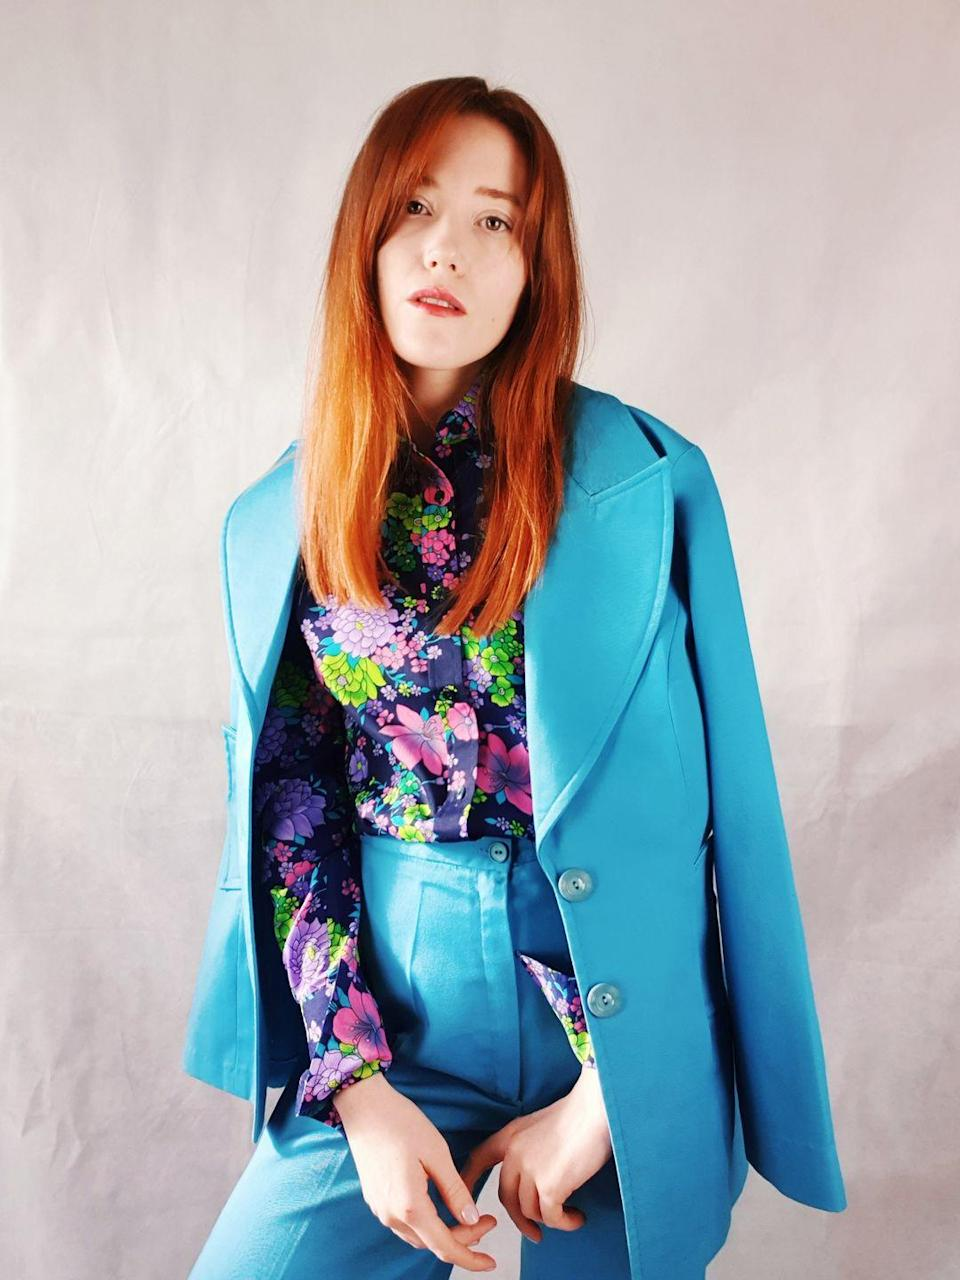 """<p>'Here at Beat Girl, we curate fun, wearable and affordable vintage, focusing on sourcing vintage gems from the 1950s to 1970s,' 27-year-old vintage-lover Mary Costello told ELLE UK.</p><p>'Each item is carefully hand-picked, from 1960s mini dresses, the perfect suit, to that pair of flares you'll never be without.'</p><p><a class=""""link rapid-noclick-resp"""" href=""""https://www.etsy.com/uk/shop/Beatgirlvintage"""" rel=""""nofollow noopener"""" target=""""_blank"""" data-ylk=""""slk:SHOP BEAT GIRL VINTAGE NOW"""">SHOP BEAT GIRL VINTAGE NOW</a></p>"""